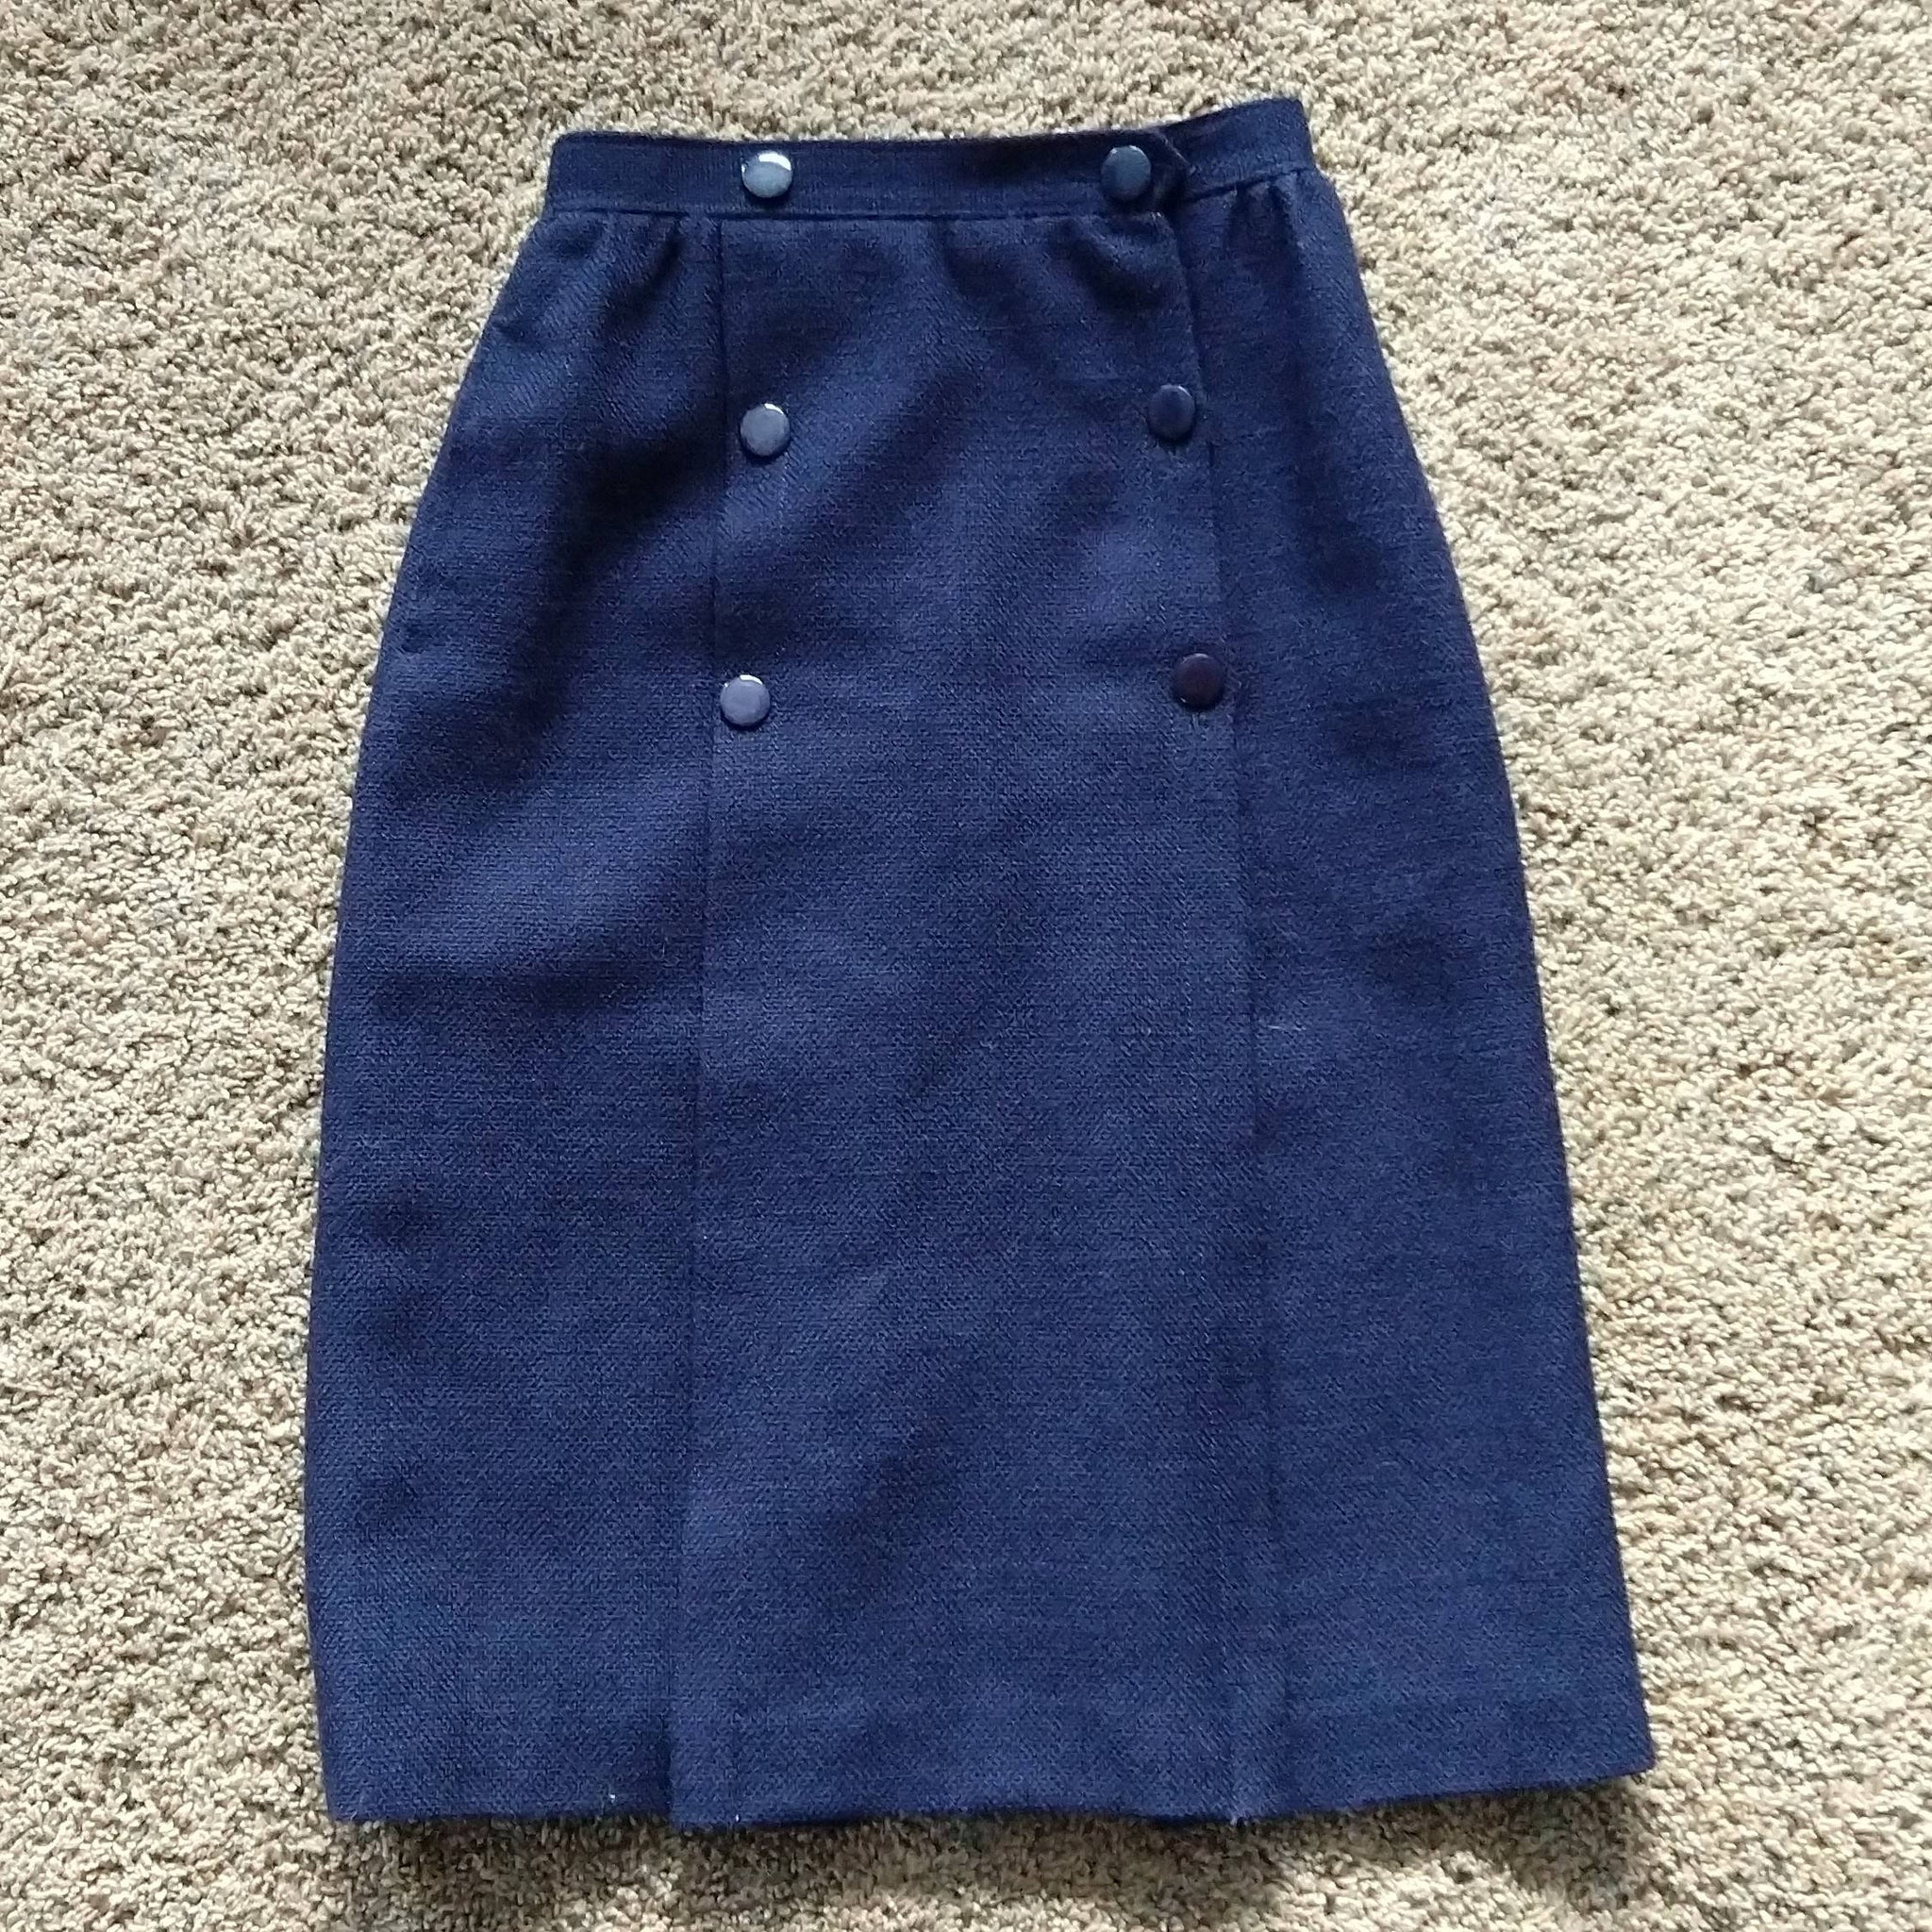 NAVY BLUE woven SKIRT with pockets 80s 90s xs (J8)